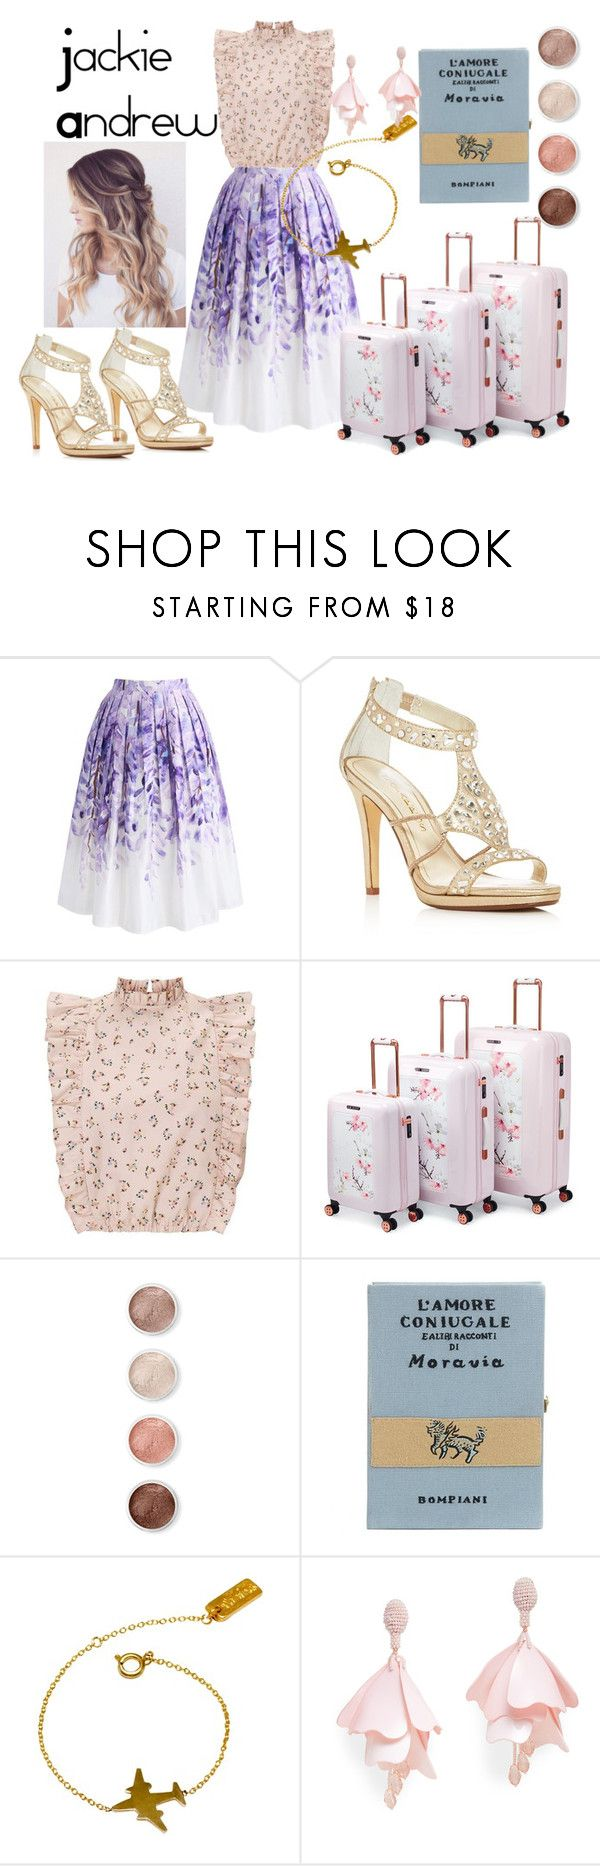 """""""Jacie & Jacki Andrew"""" by sophiachabo ❤ liked on Polyvore featuring Chicwish, Caparros, Ted Baker, Terre Mère, Olympia Le-Tan, VANINA and Oscar de la Renta Pink Label"""